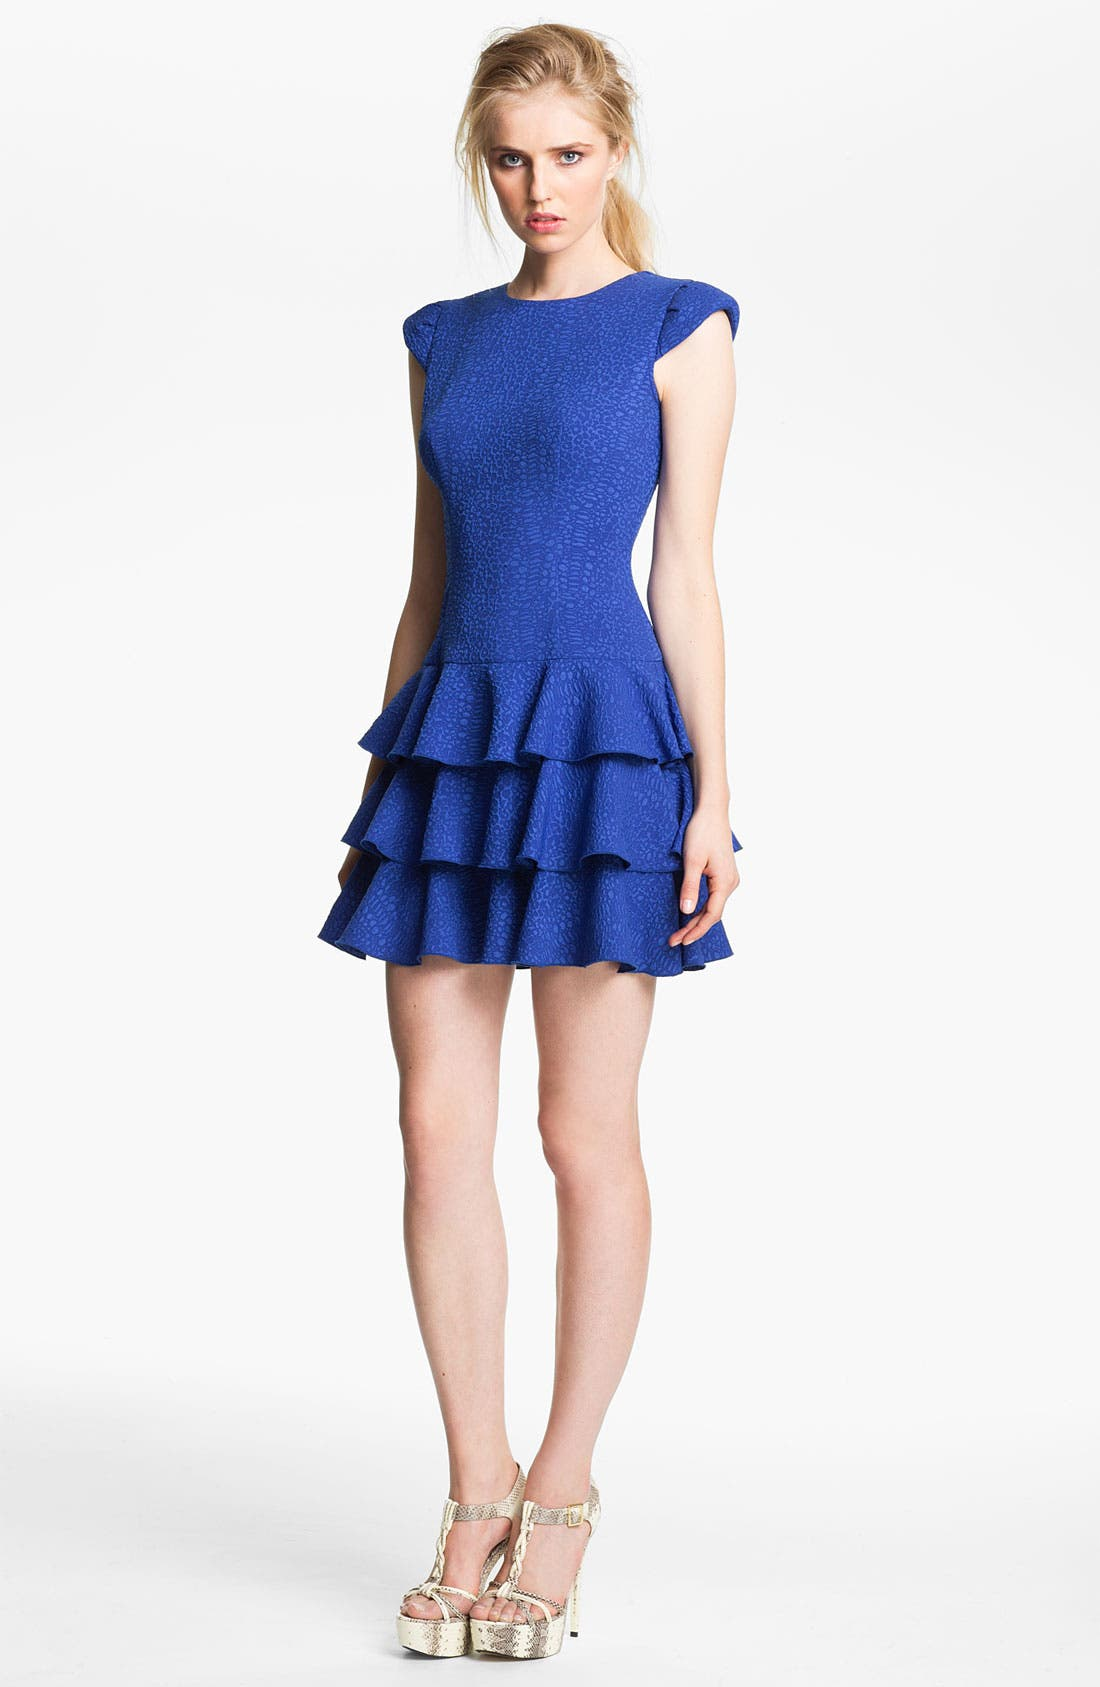 Main Image - Rachel Zoe Cutout Back Dress